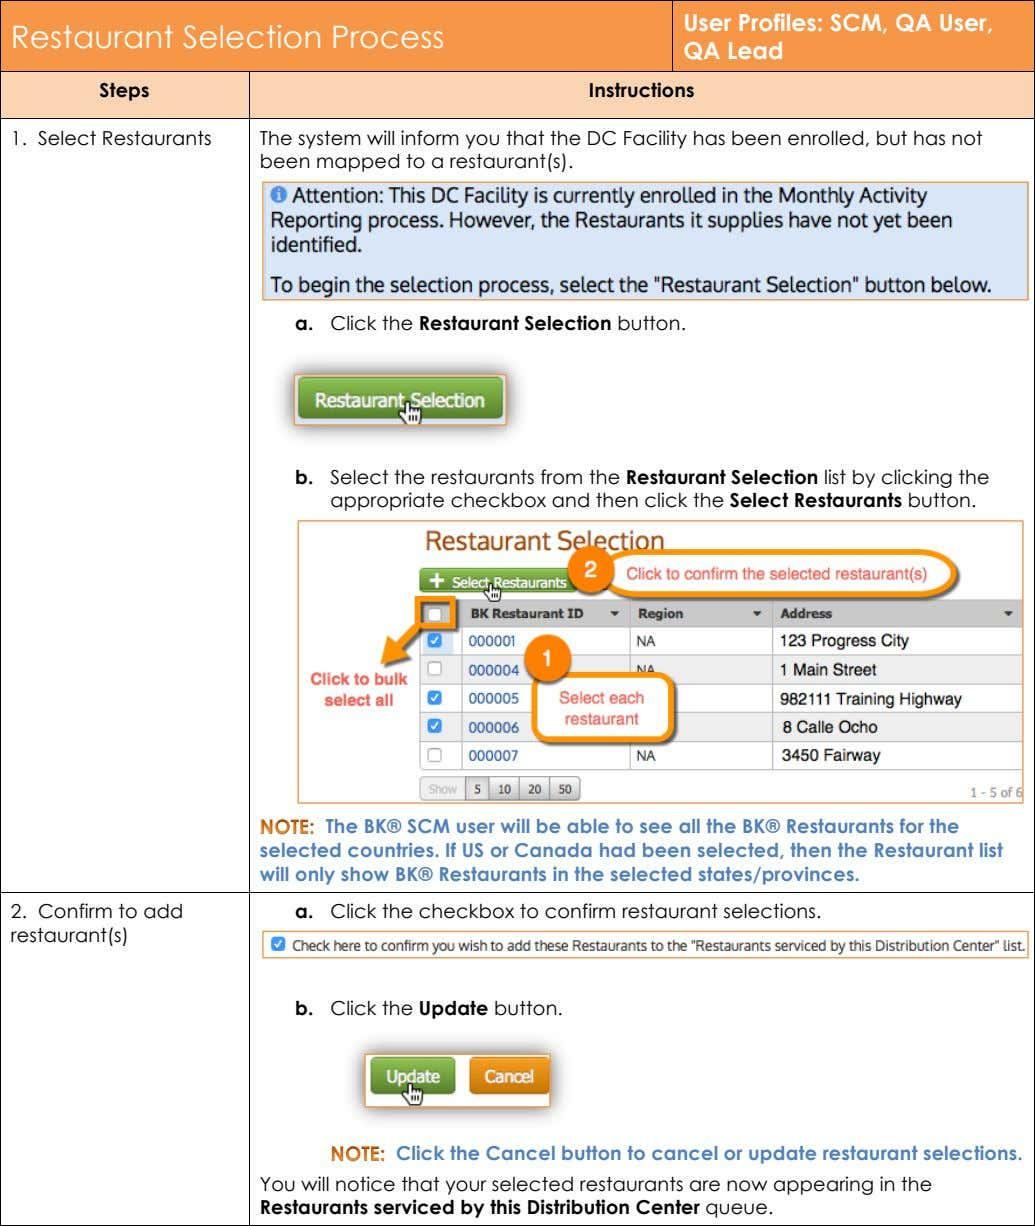 Restaurant Selection Process User Profiles: SCM, QA User, QA Lead Steps Instructions 1. Select Restaurants